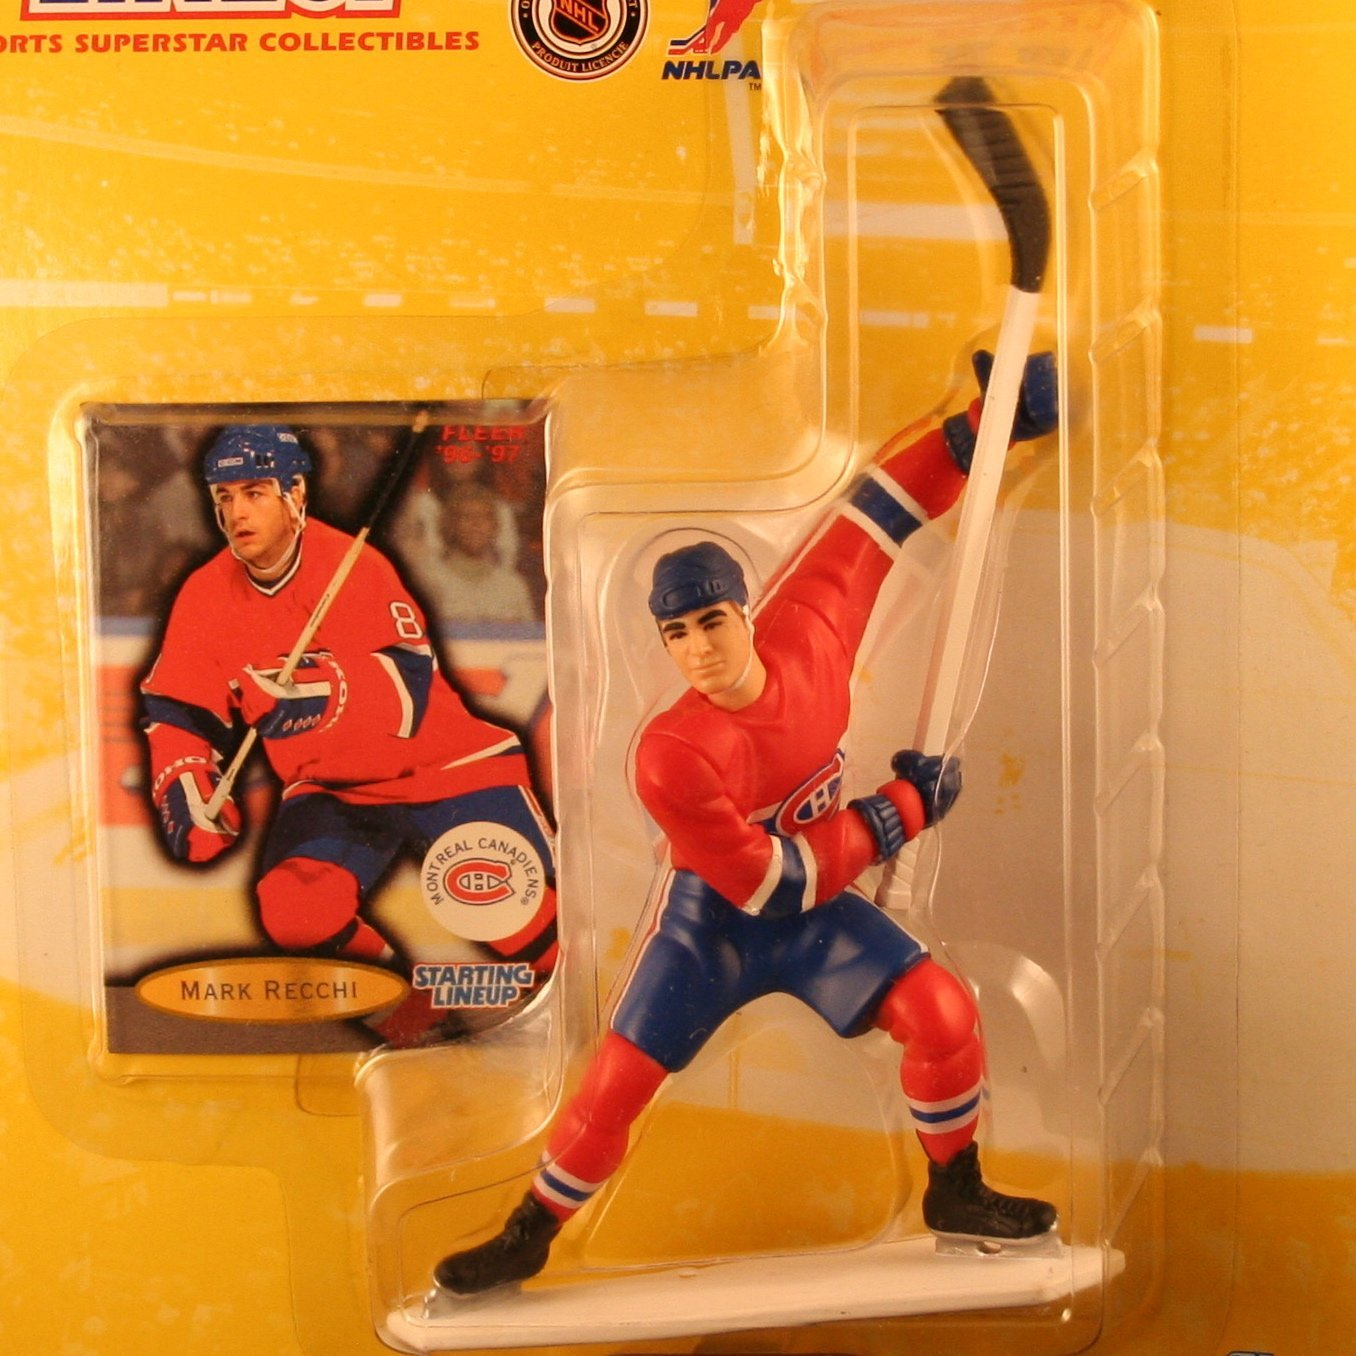 MARK RECCHI / MONTREAL CANADIENS 1997 NHL Starting Lineup Action Figure & Exclusive NHL FLEER '96/'97 Collector Trading Card